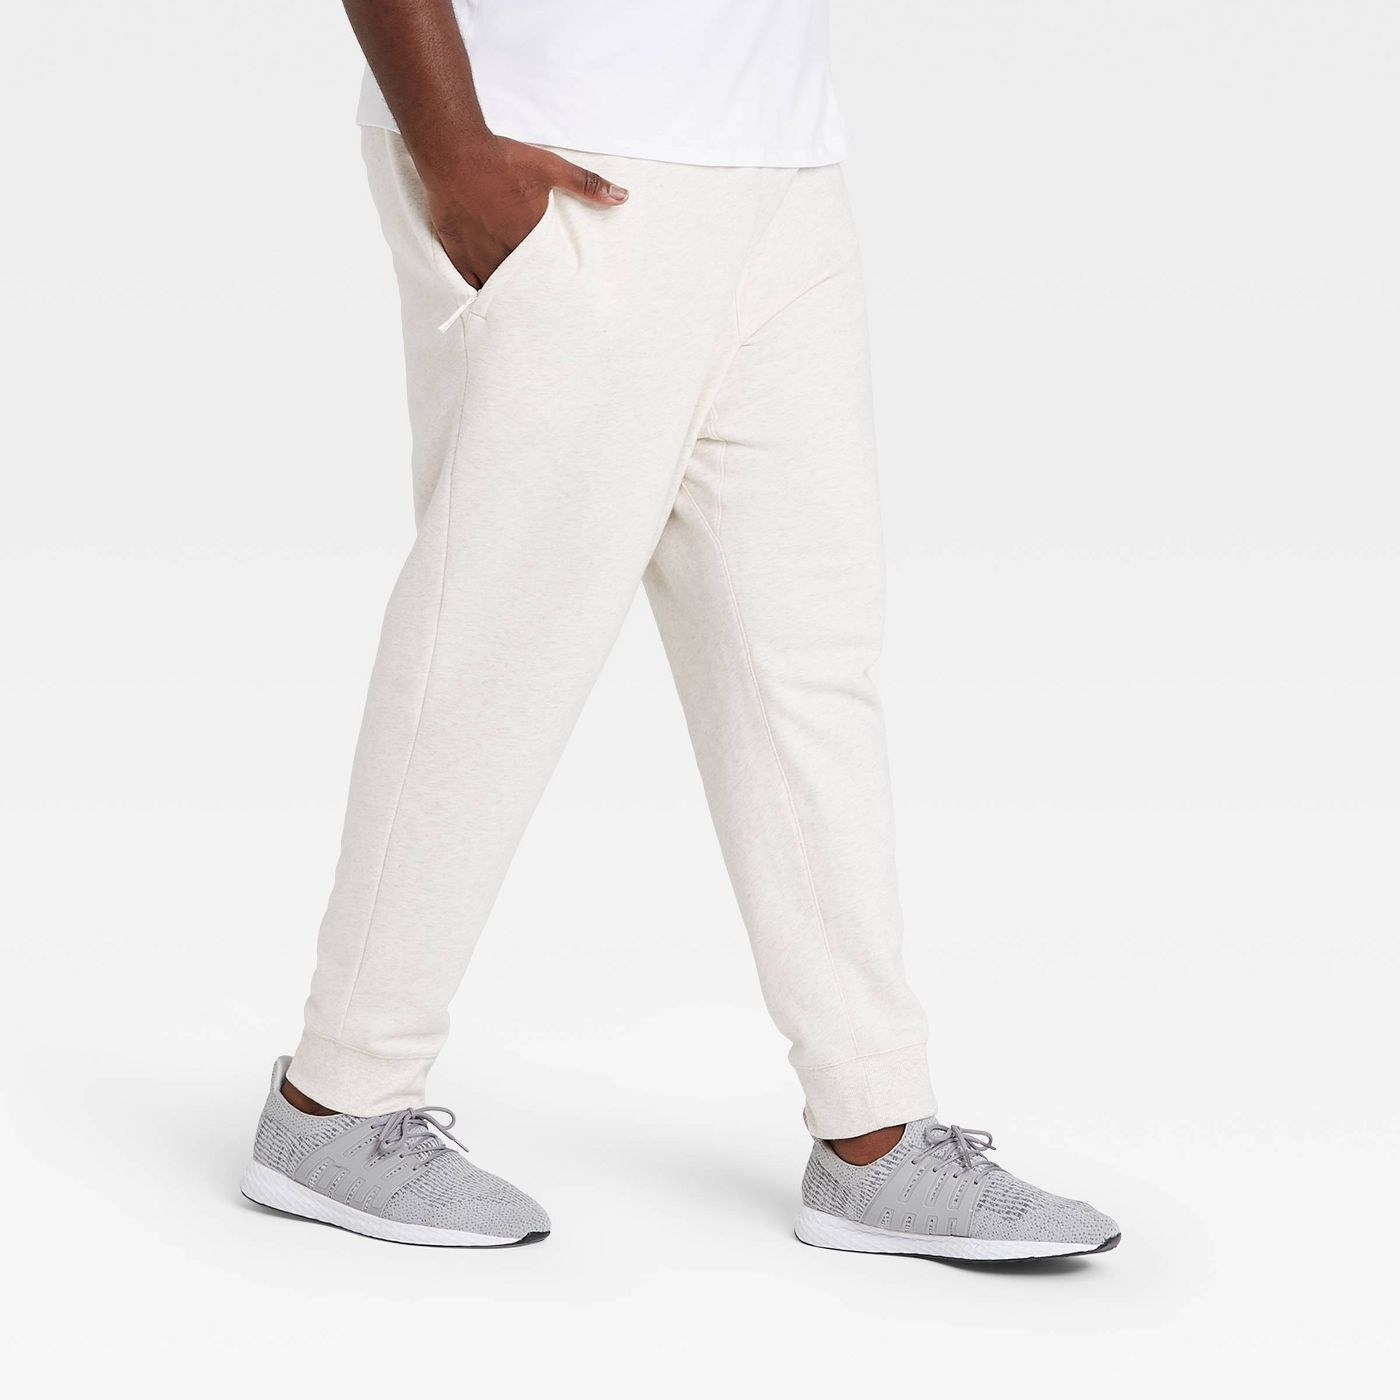 A person wearing white heather joggers, shown against a white background